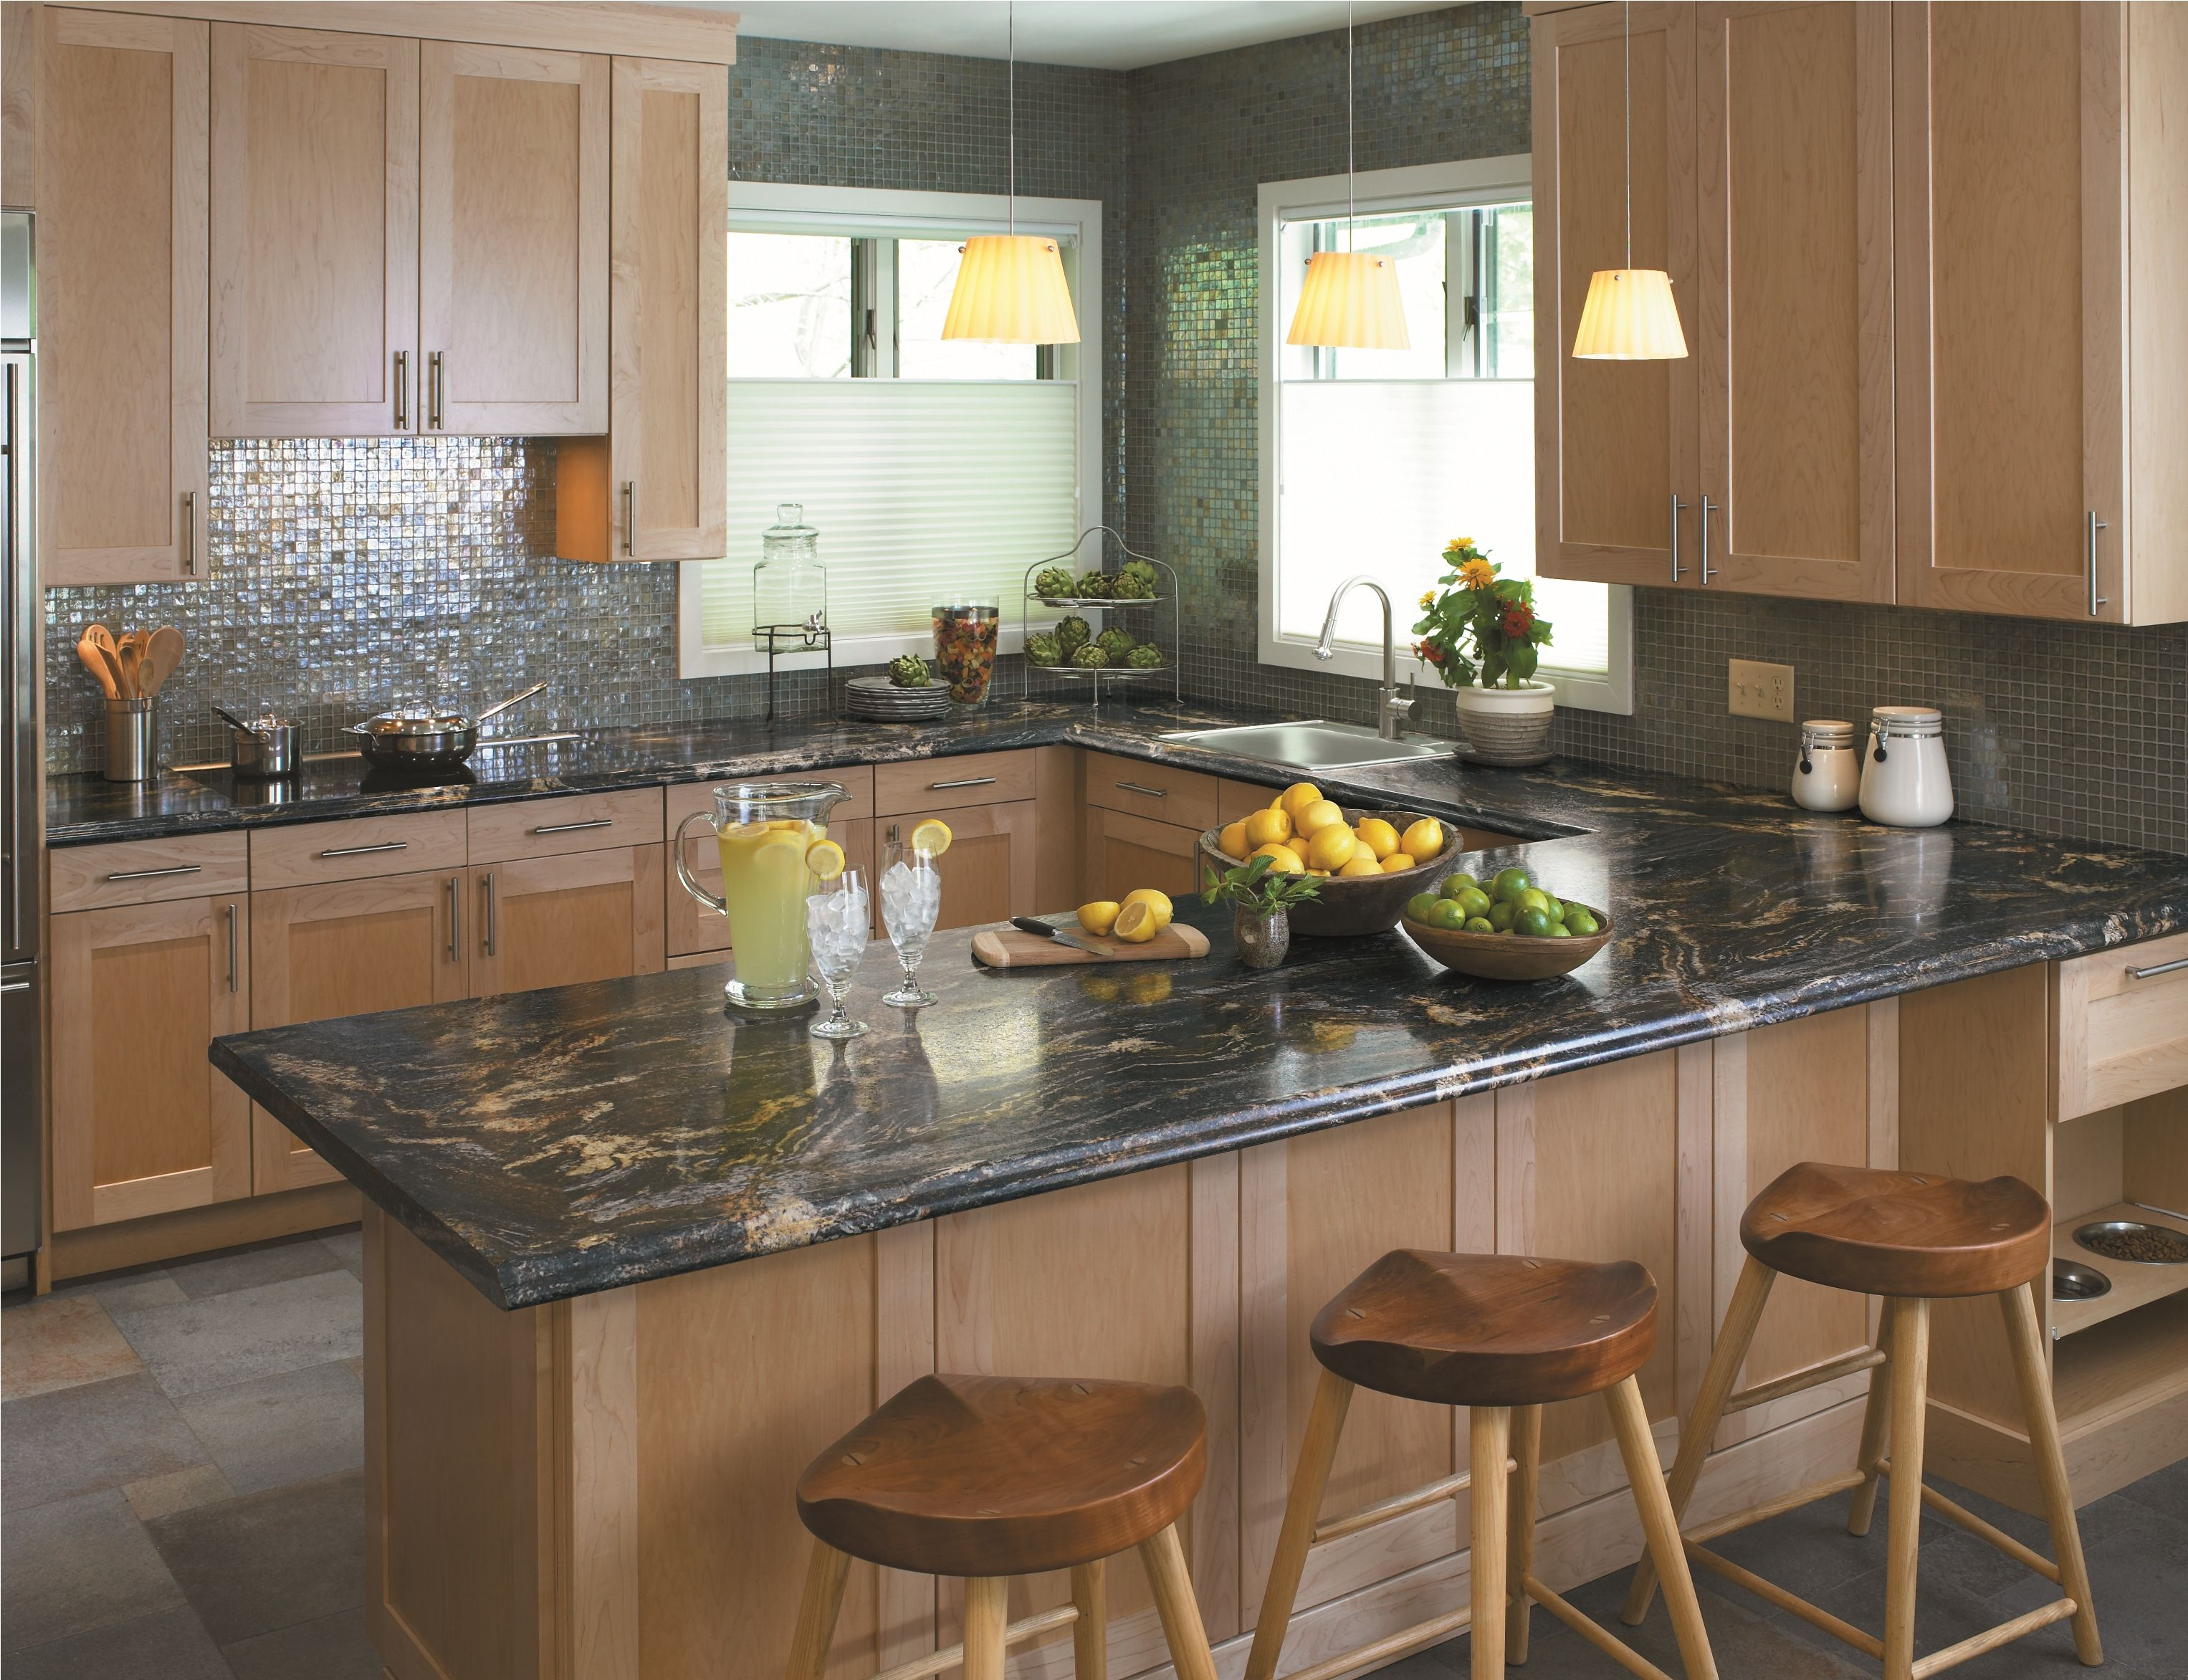 Discount Granite Countertops Nj 3467 Blue Storm Interiordesign Kitchen Countertop